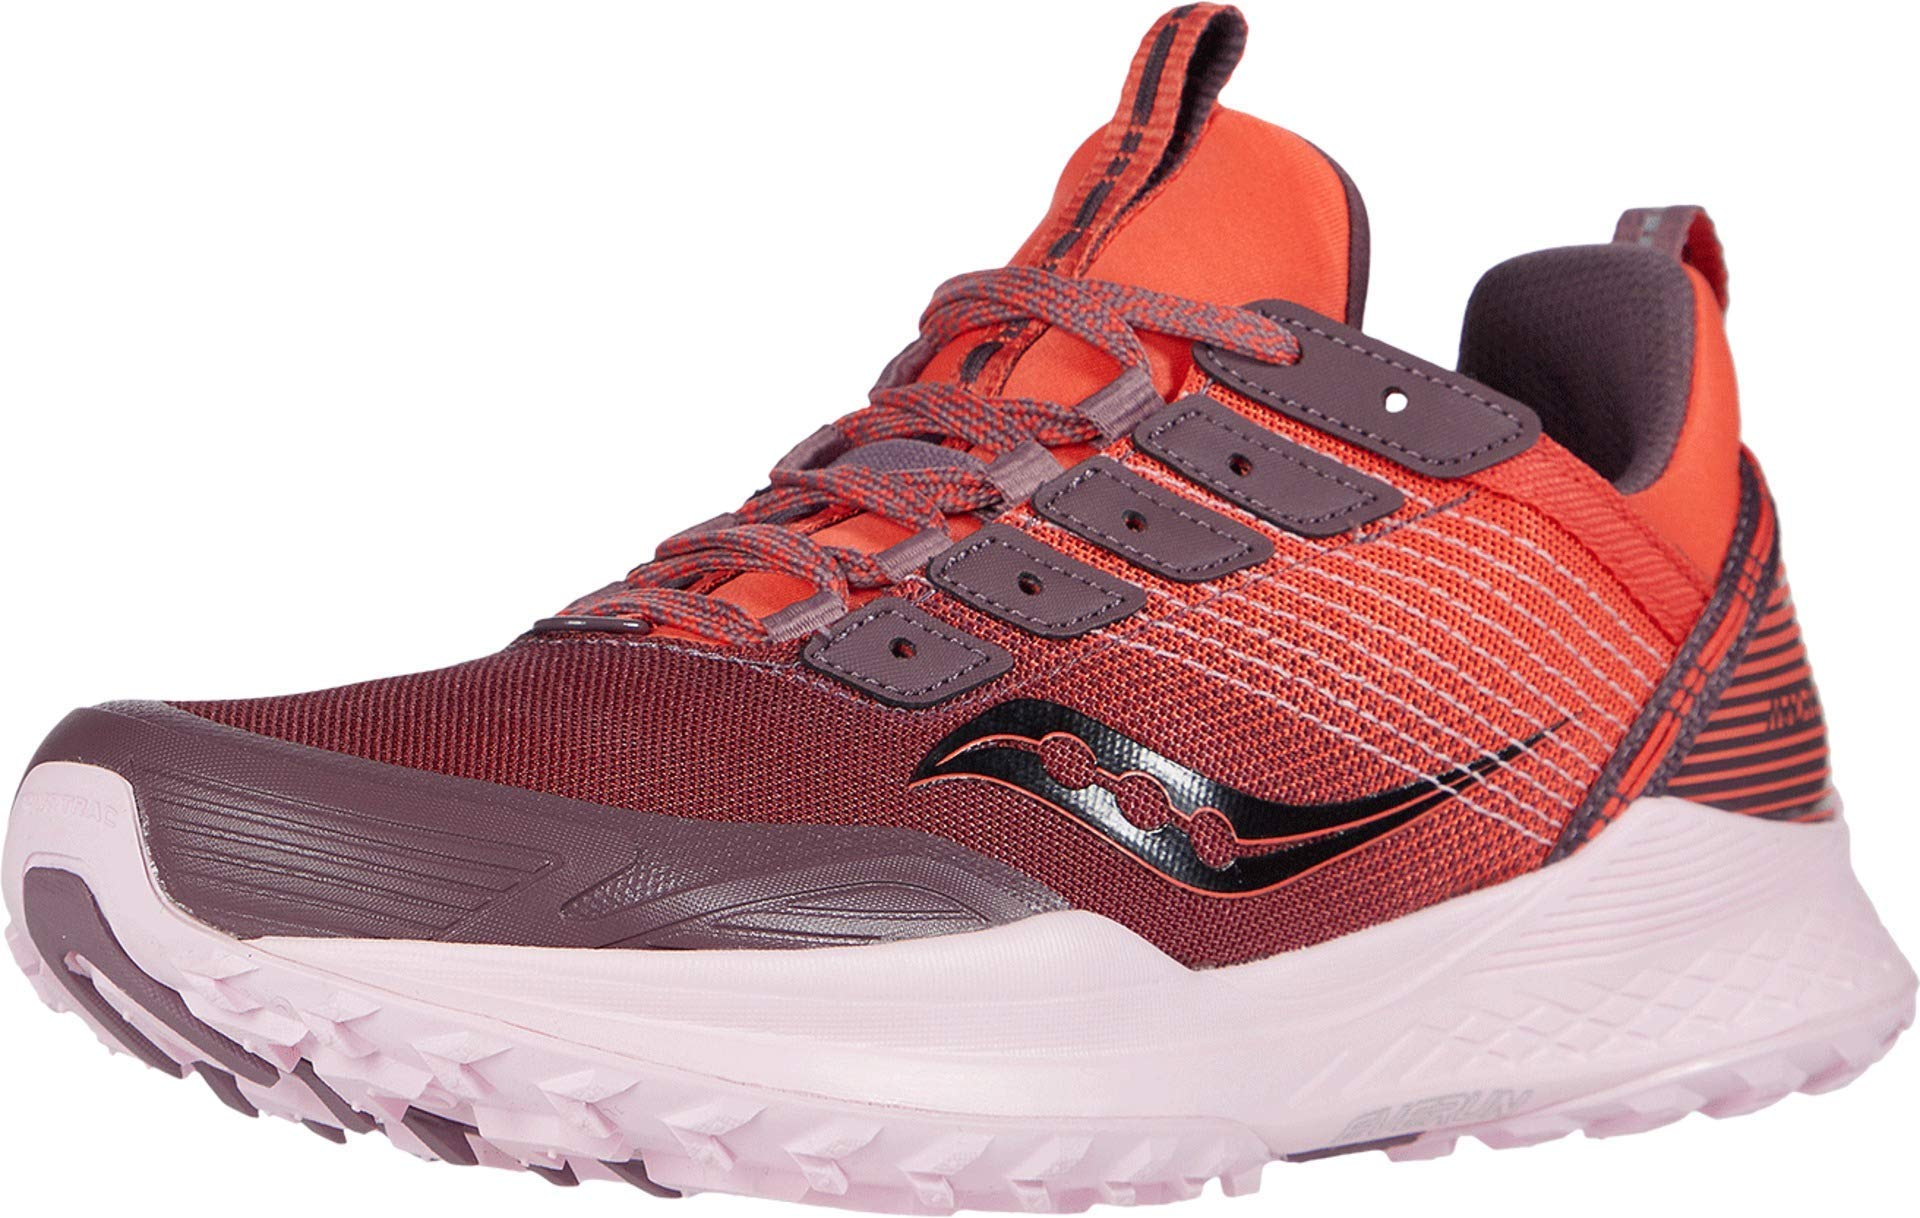 Saucony Women's Mad River TR Trail Running Shoe